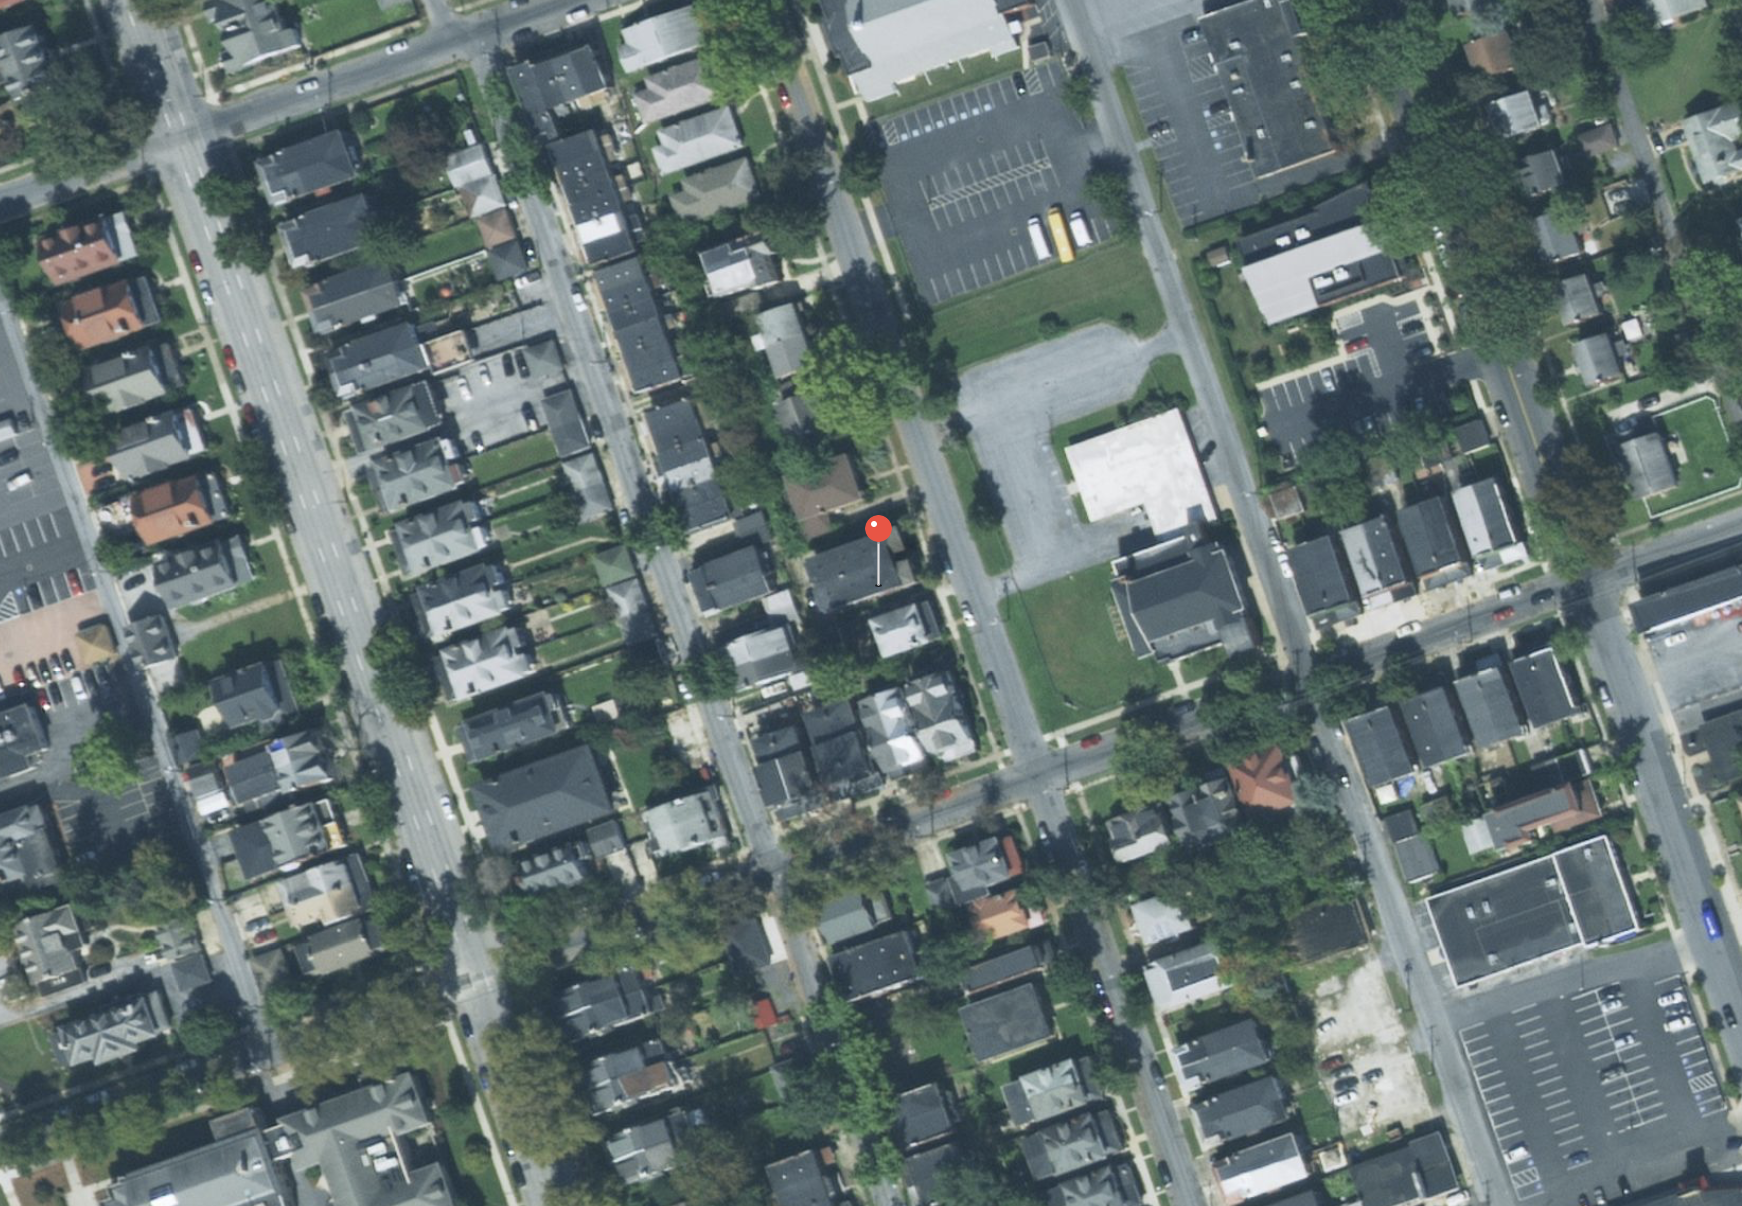 Satellite map of where I lived on Green St in Harrisburg